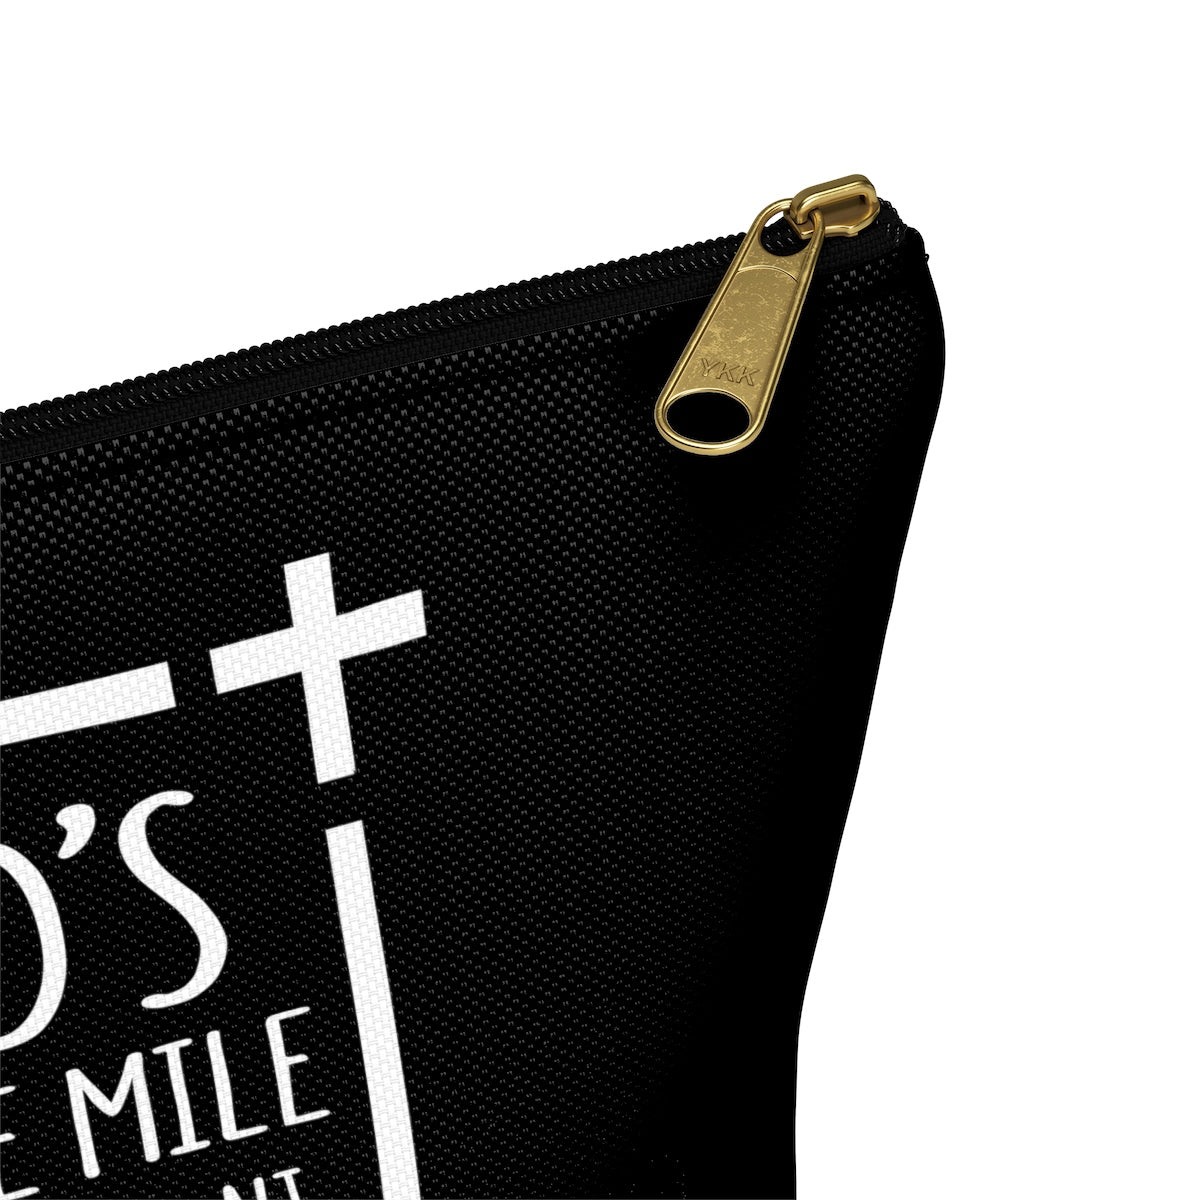 God's Square Mile Accessory Bag: Black - GoGannon Designs